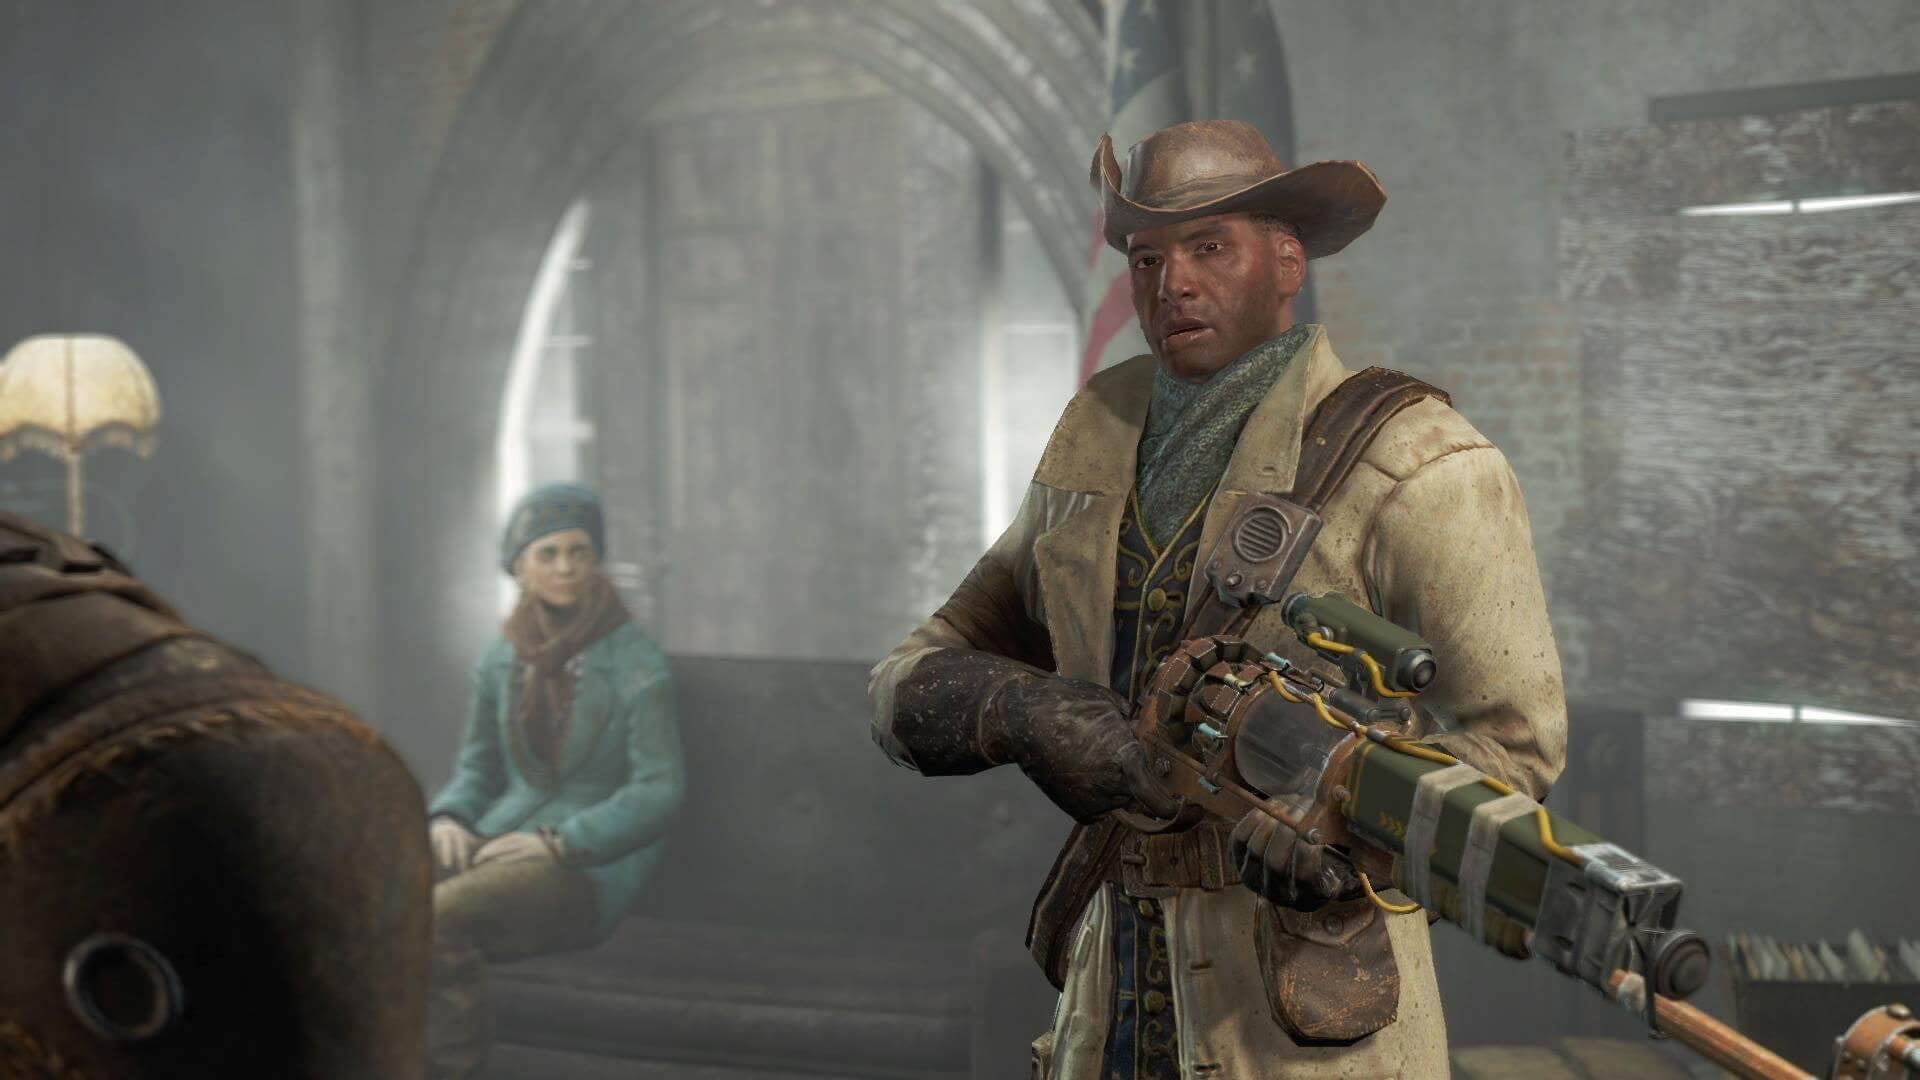 Fallout 4 on Xbox One Can Use PC Mods